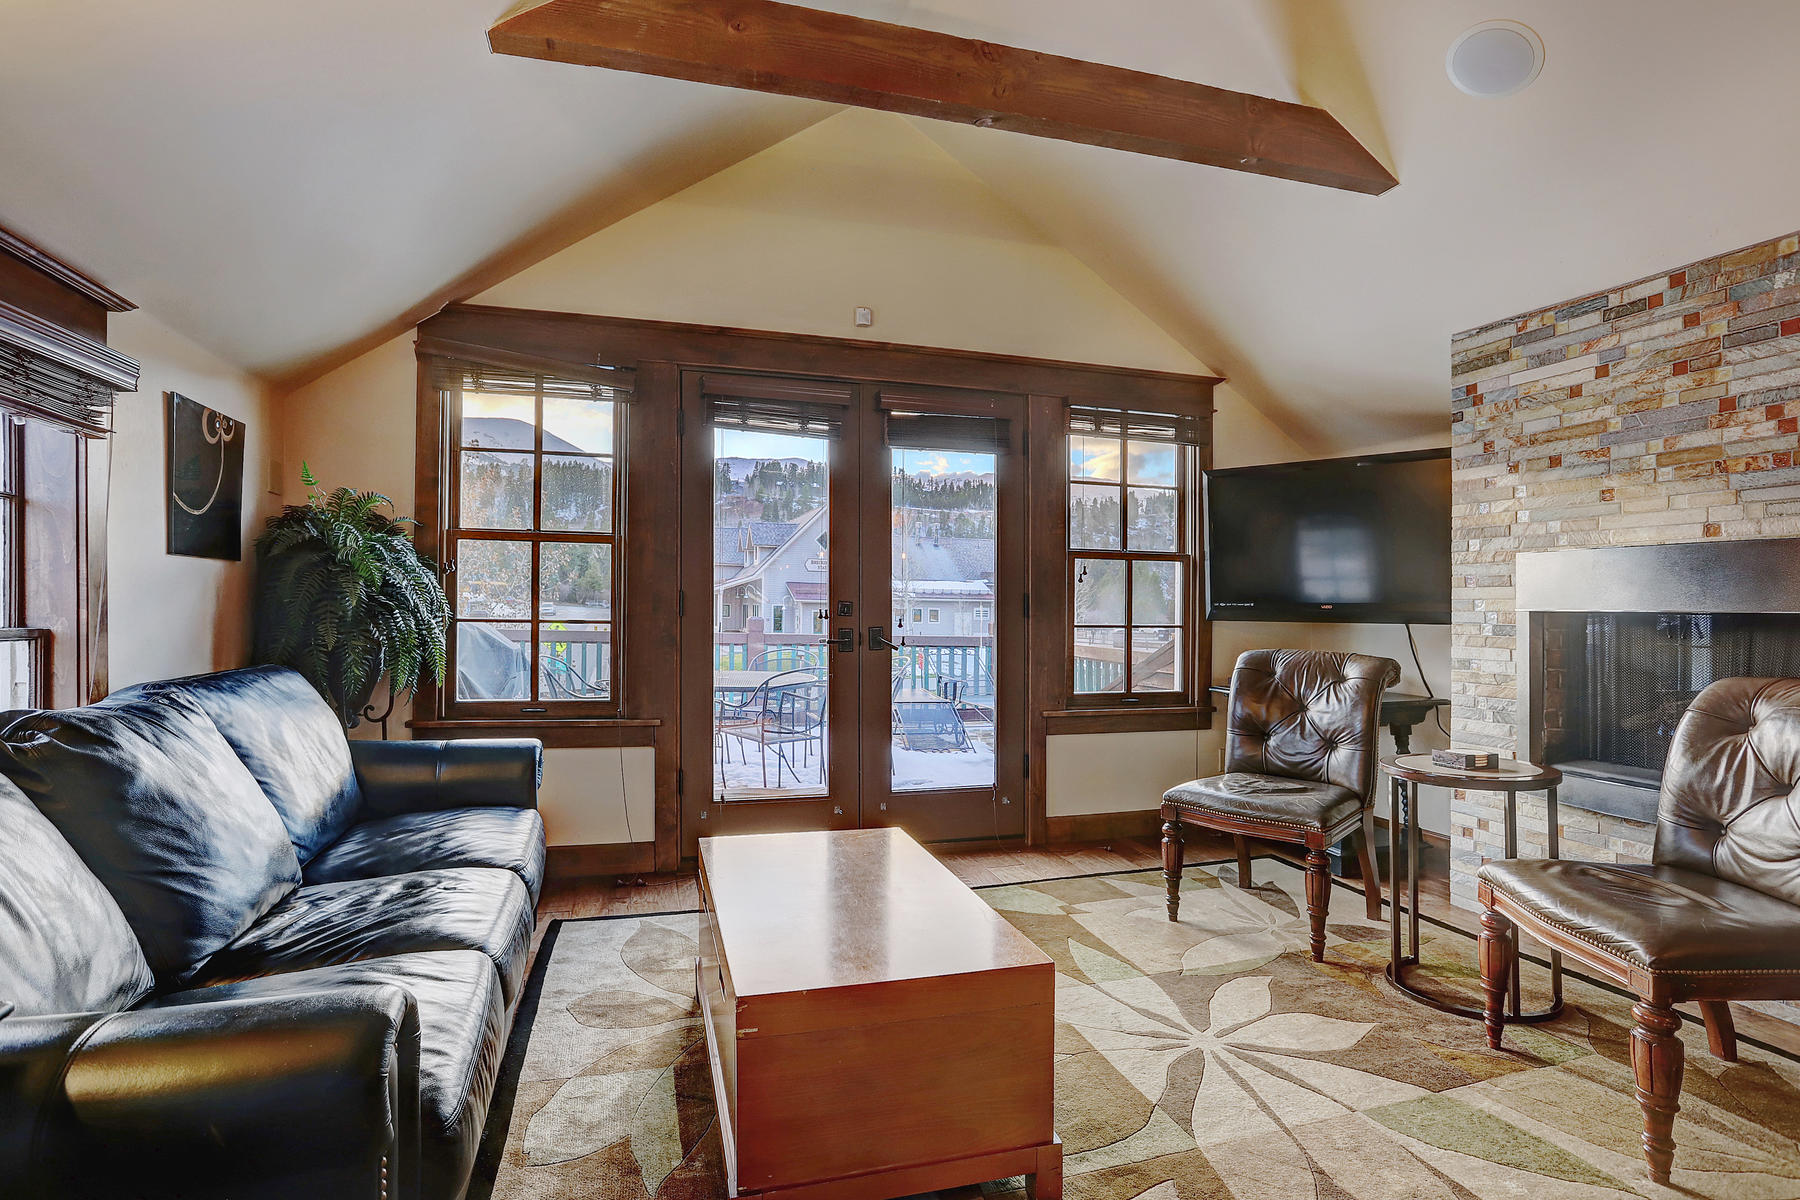 Single Family Homes for Active at The Gondola House 301 N Main Street Breckenridge, Colorado 80424 United States